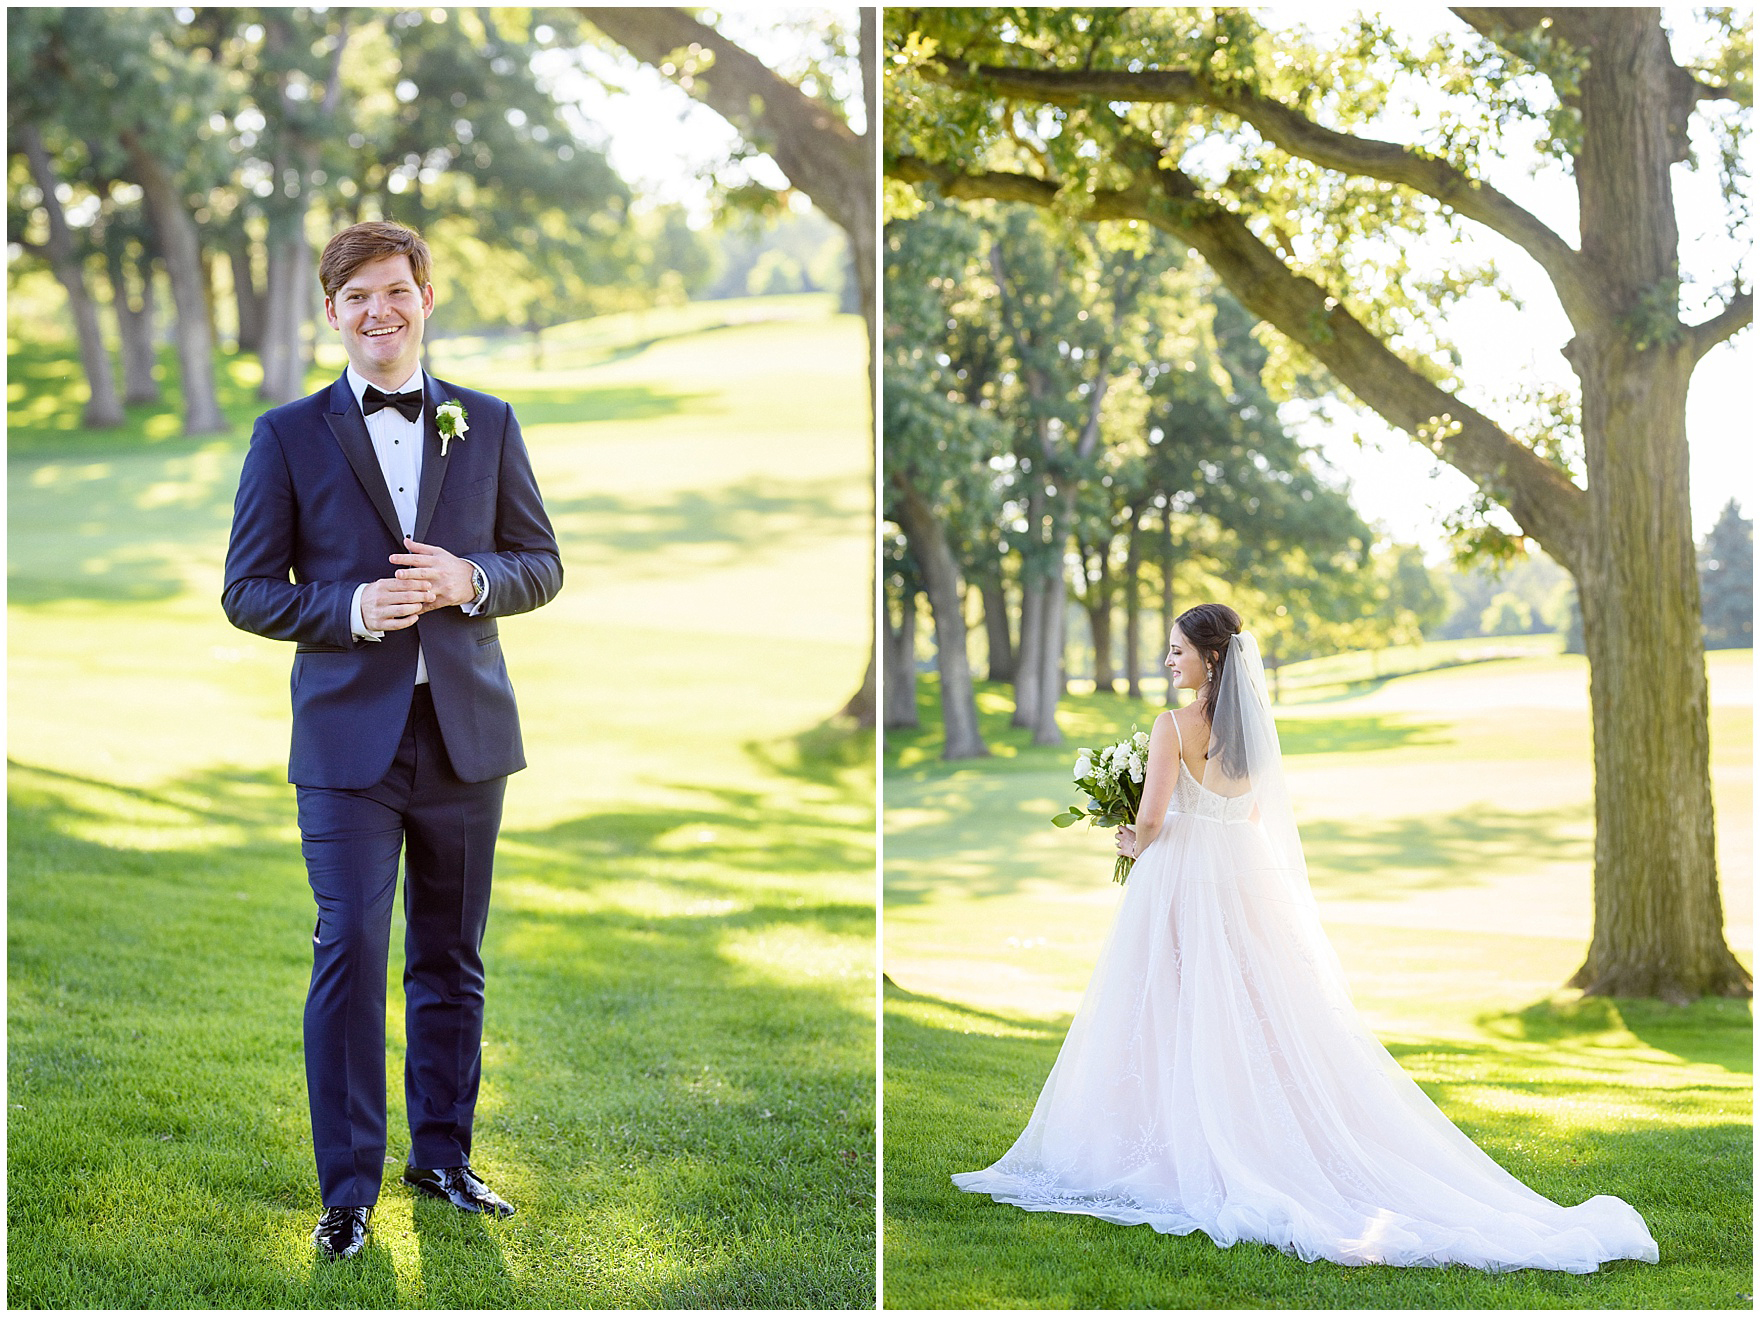 Portraits of the bride and groom during a Butterfield Country Club wedding.